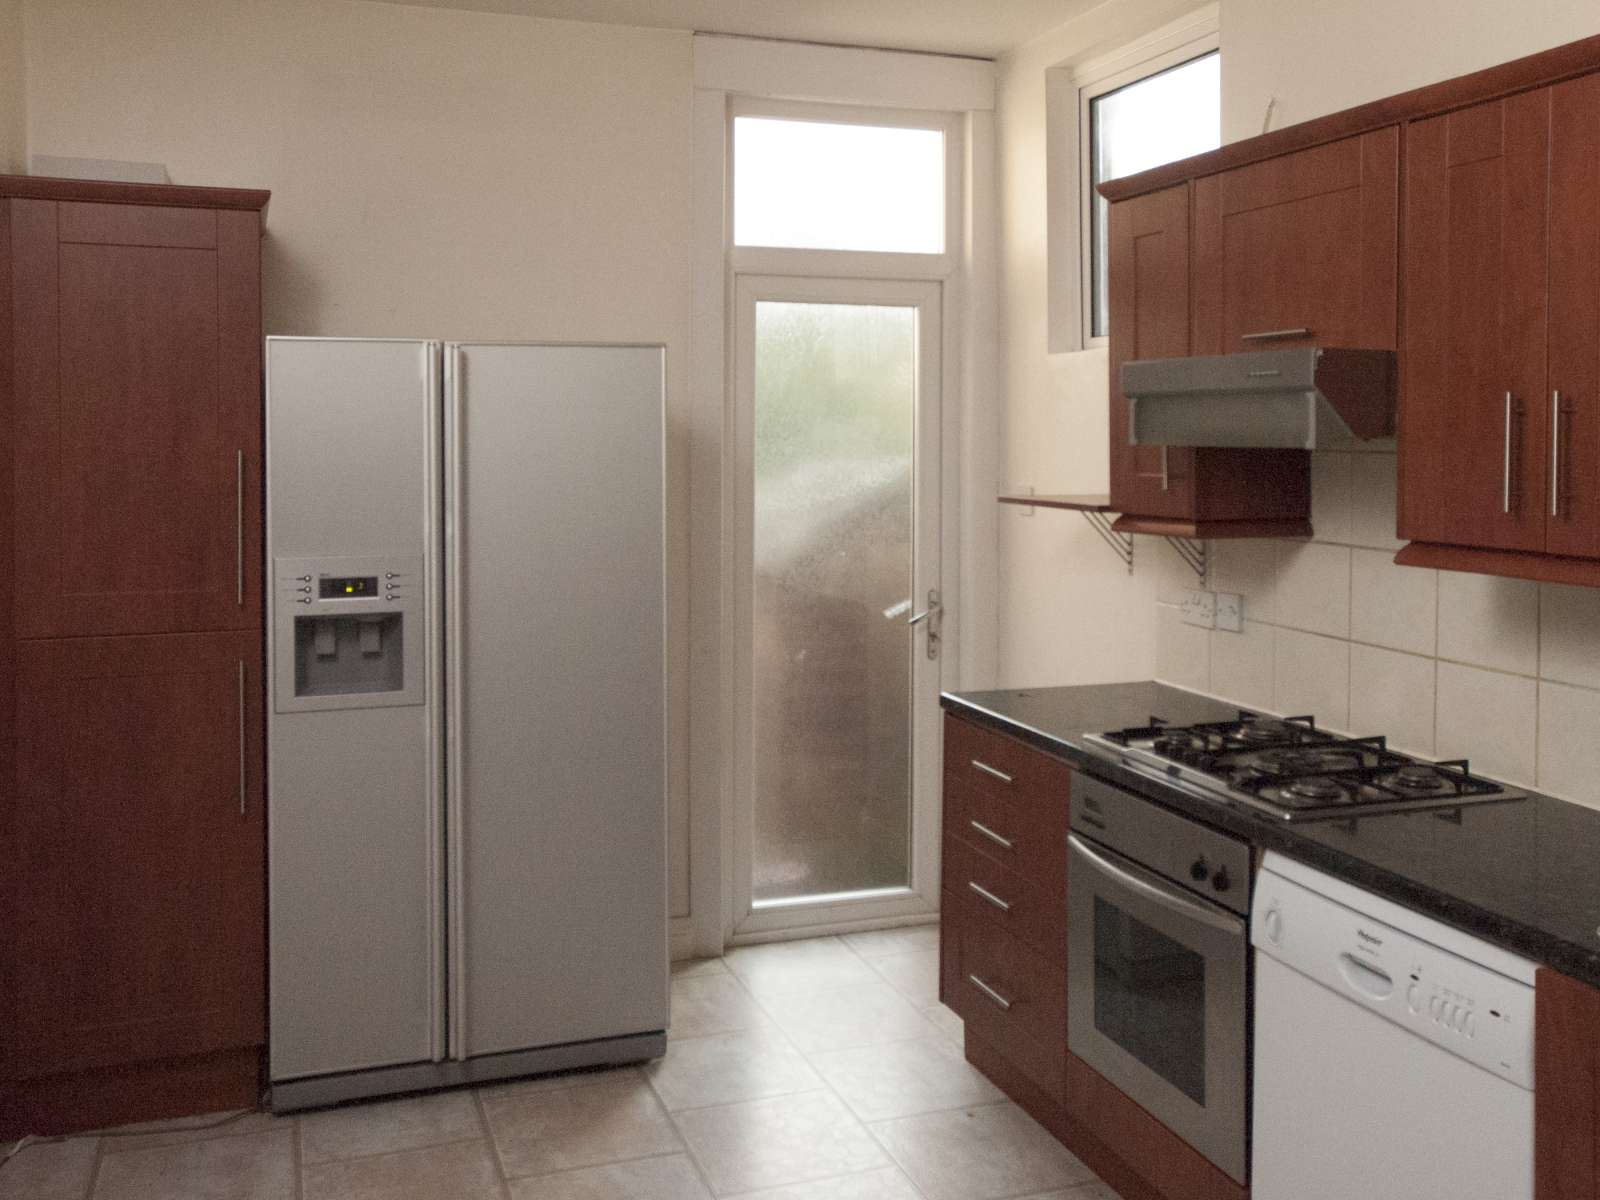 Kitchen - A place to cook and relax